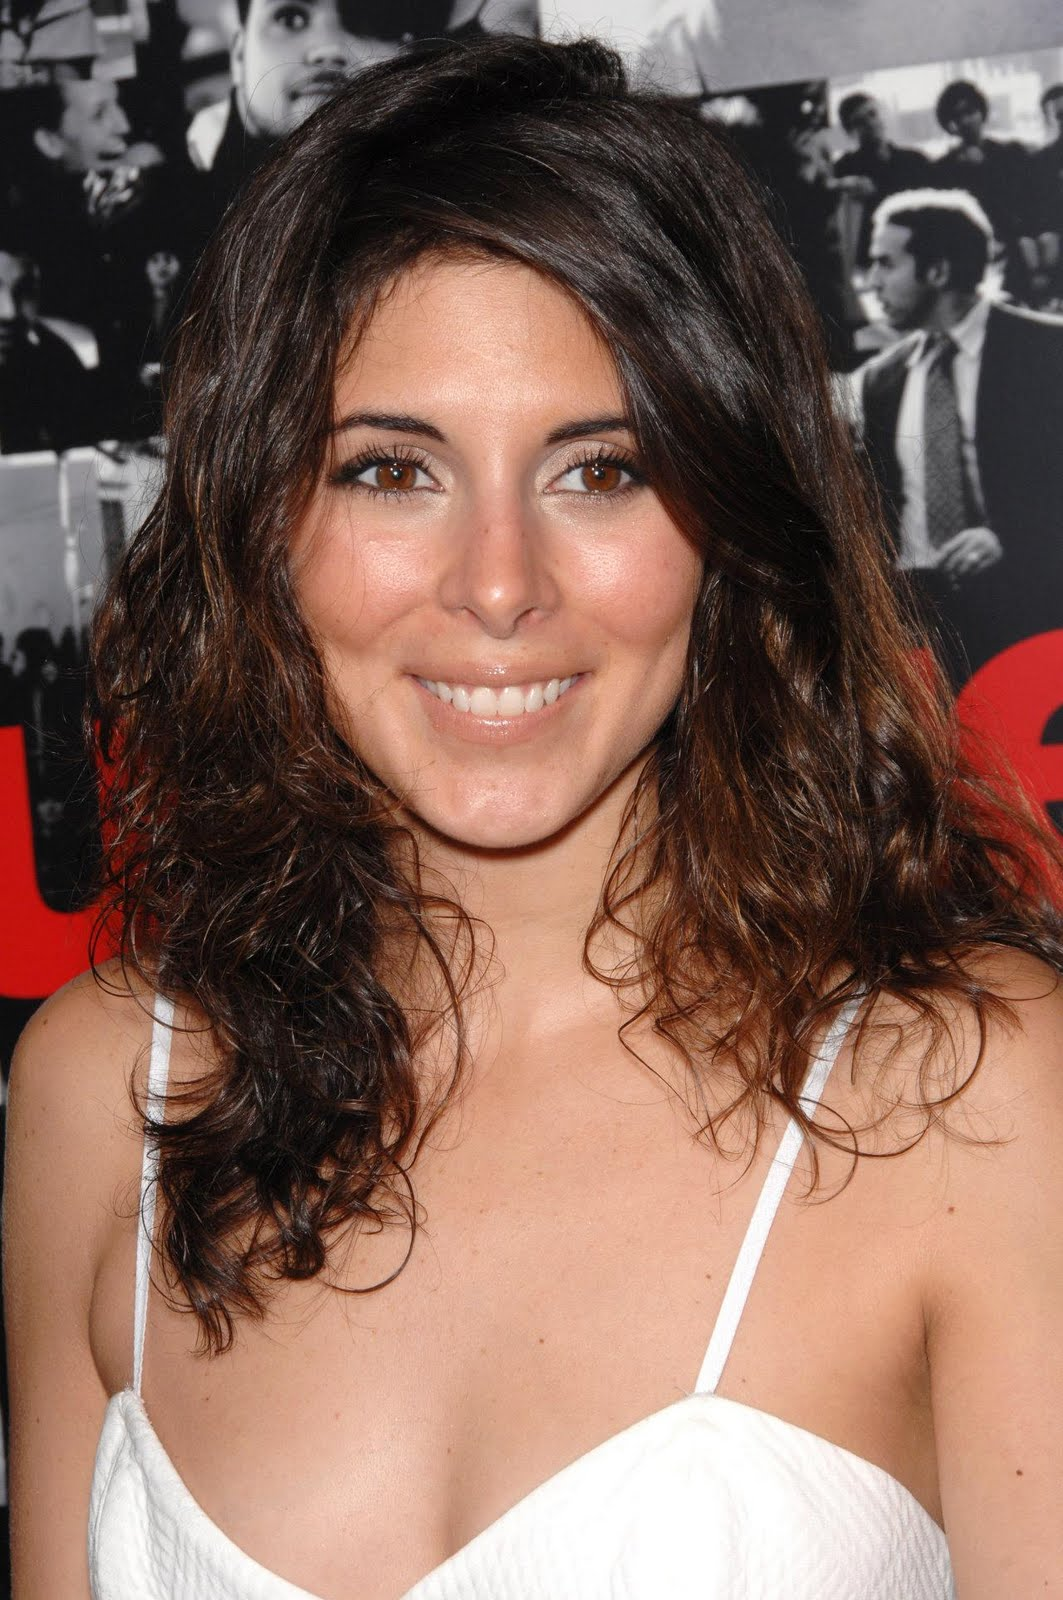 Jamie Lynn Sigler hot photo